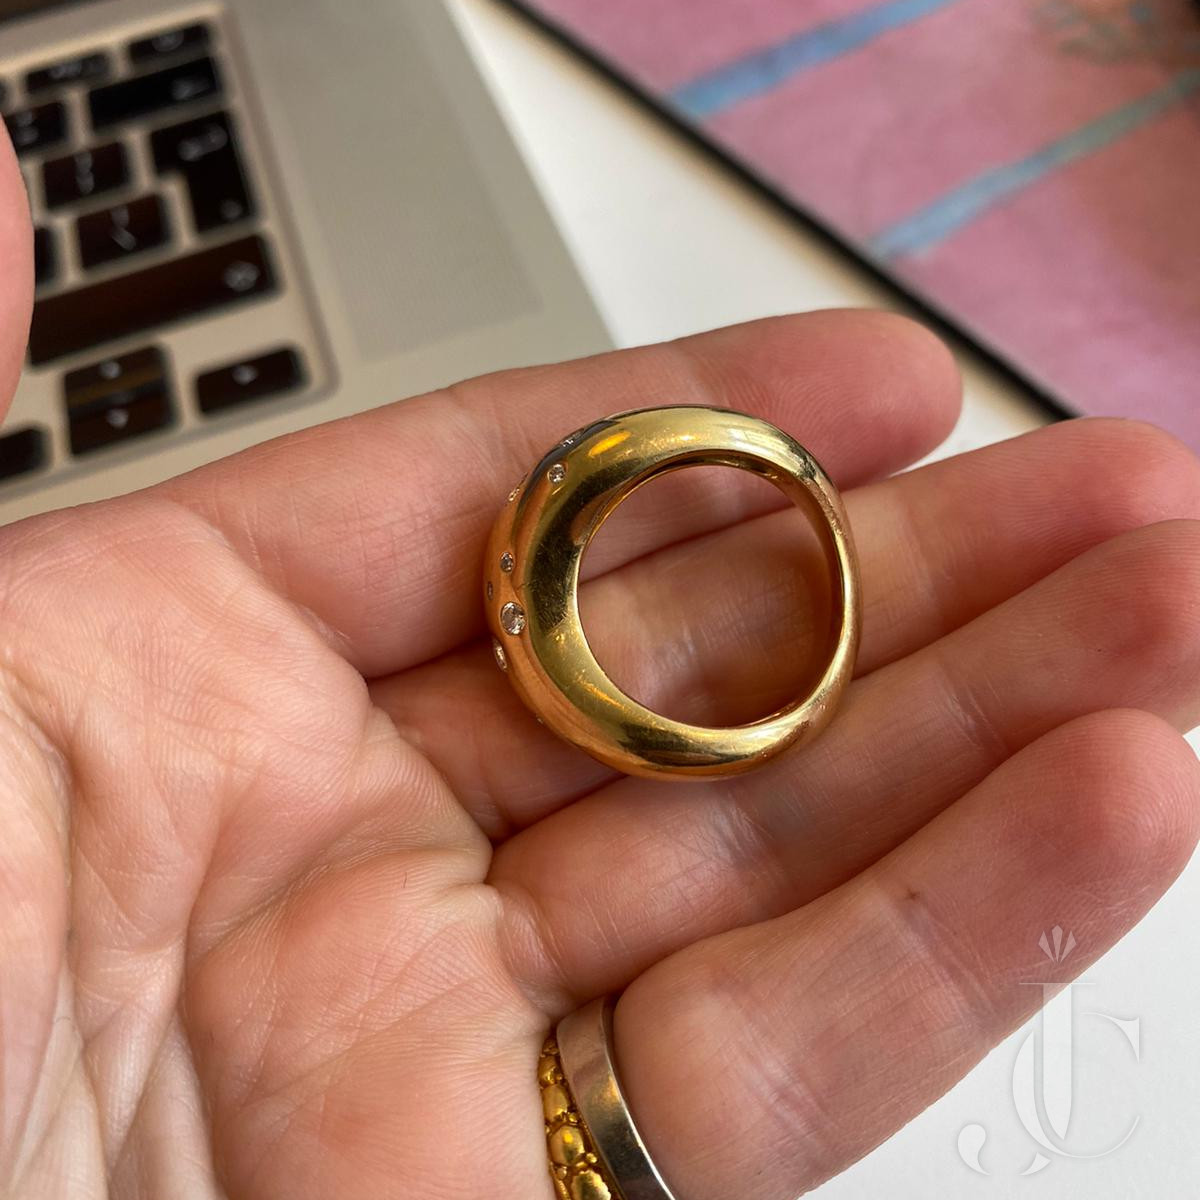 Fred of Paris gold and diamond ring